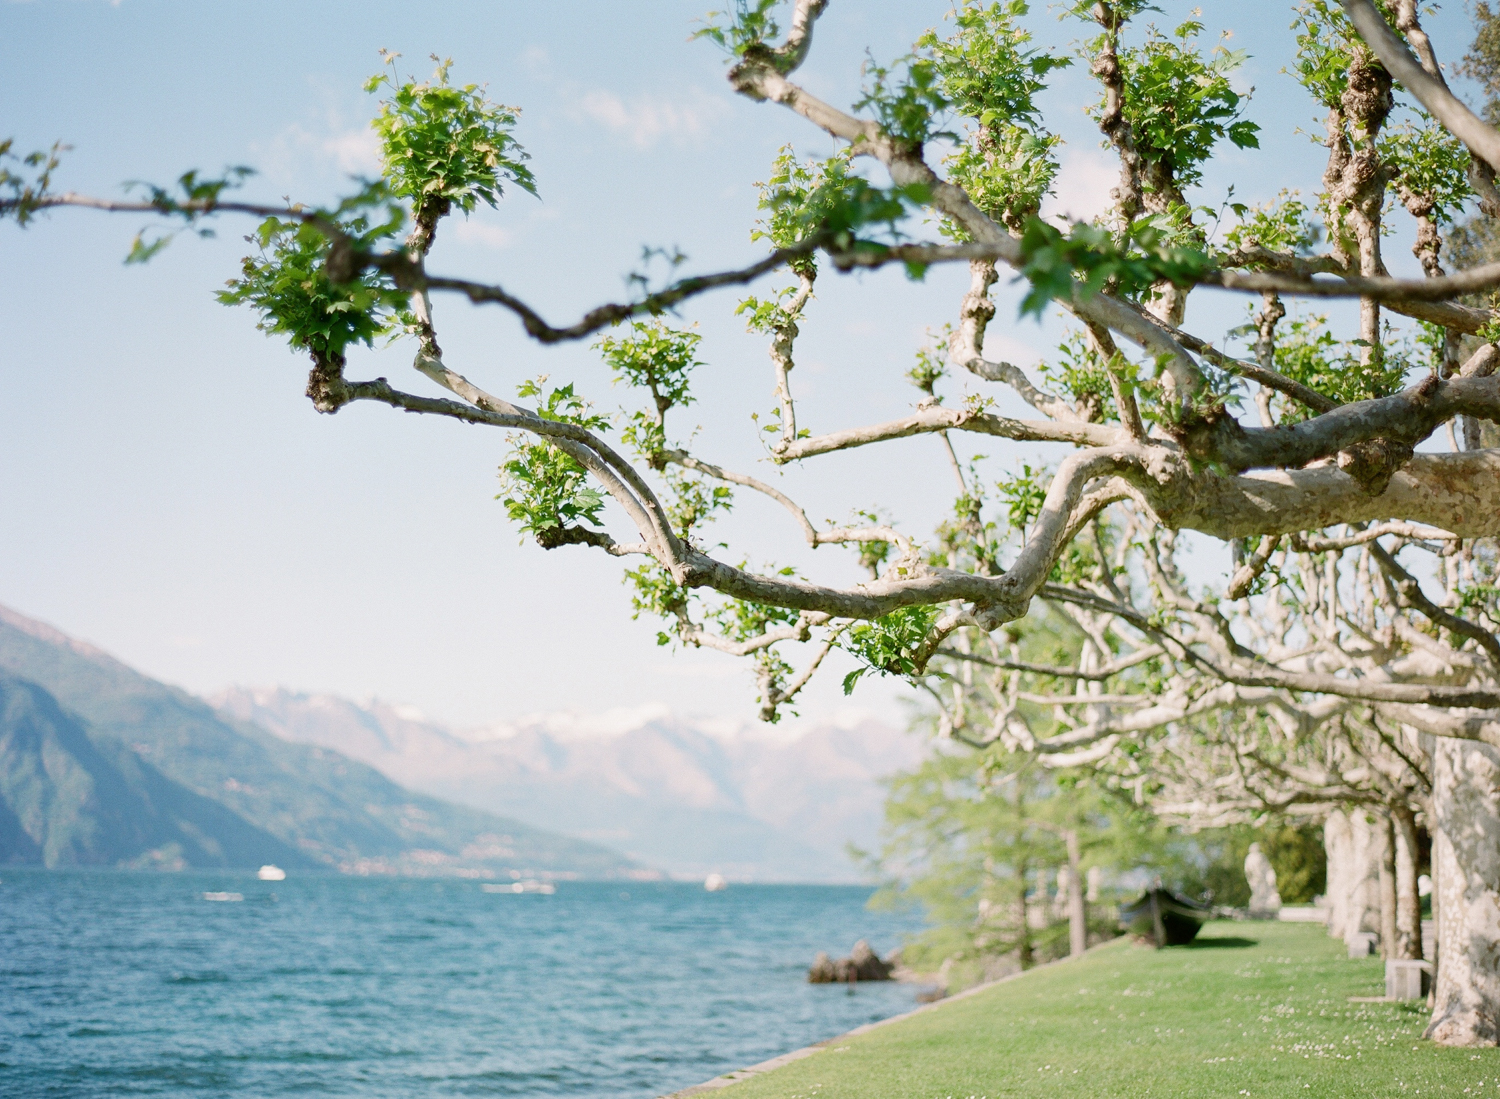 lake_como_wedding_photographer_villa_balbiano_wedding_nikol_bodnarova_photography_13.JPG